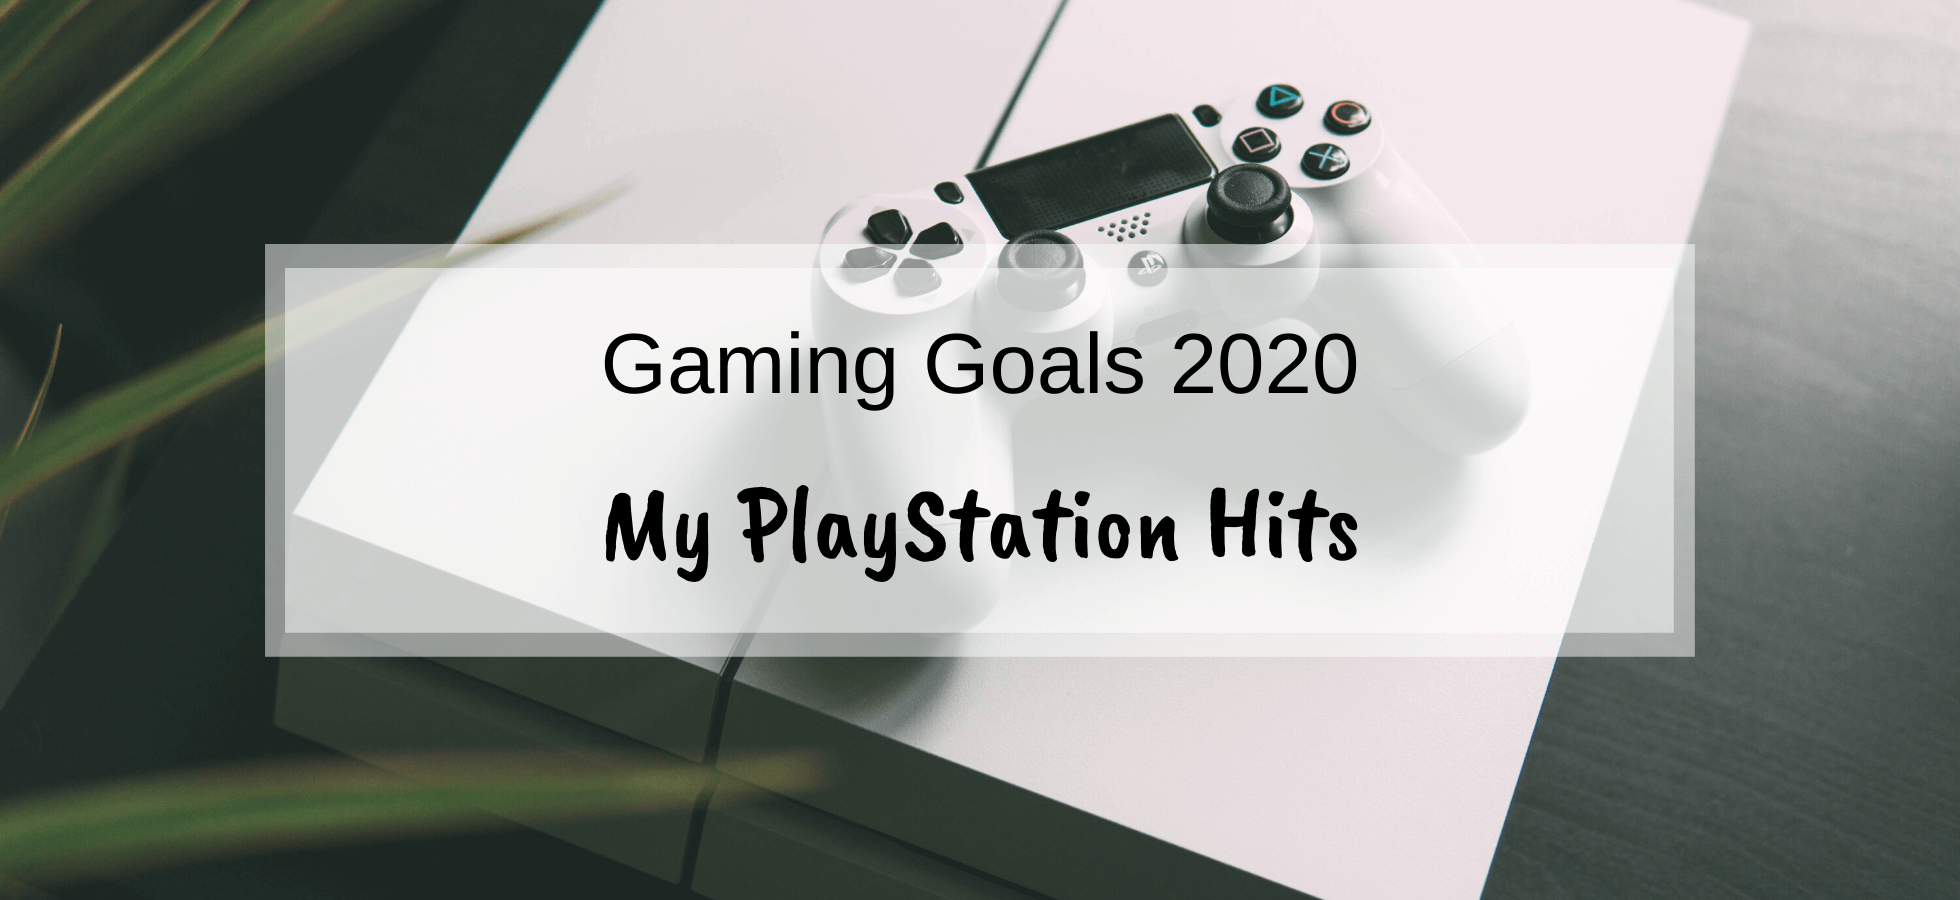 My PlayStation Hits – Gaming Goals 2020